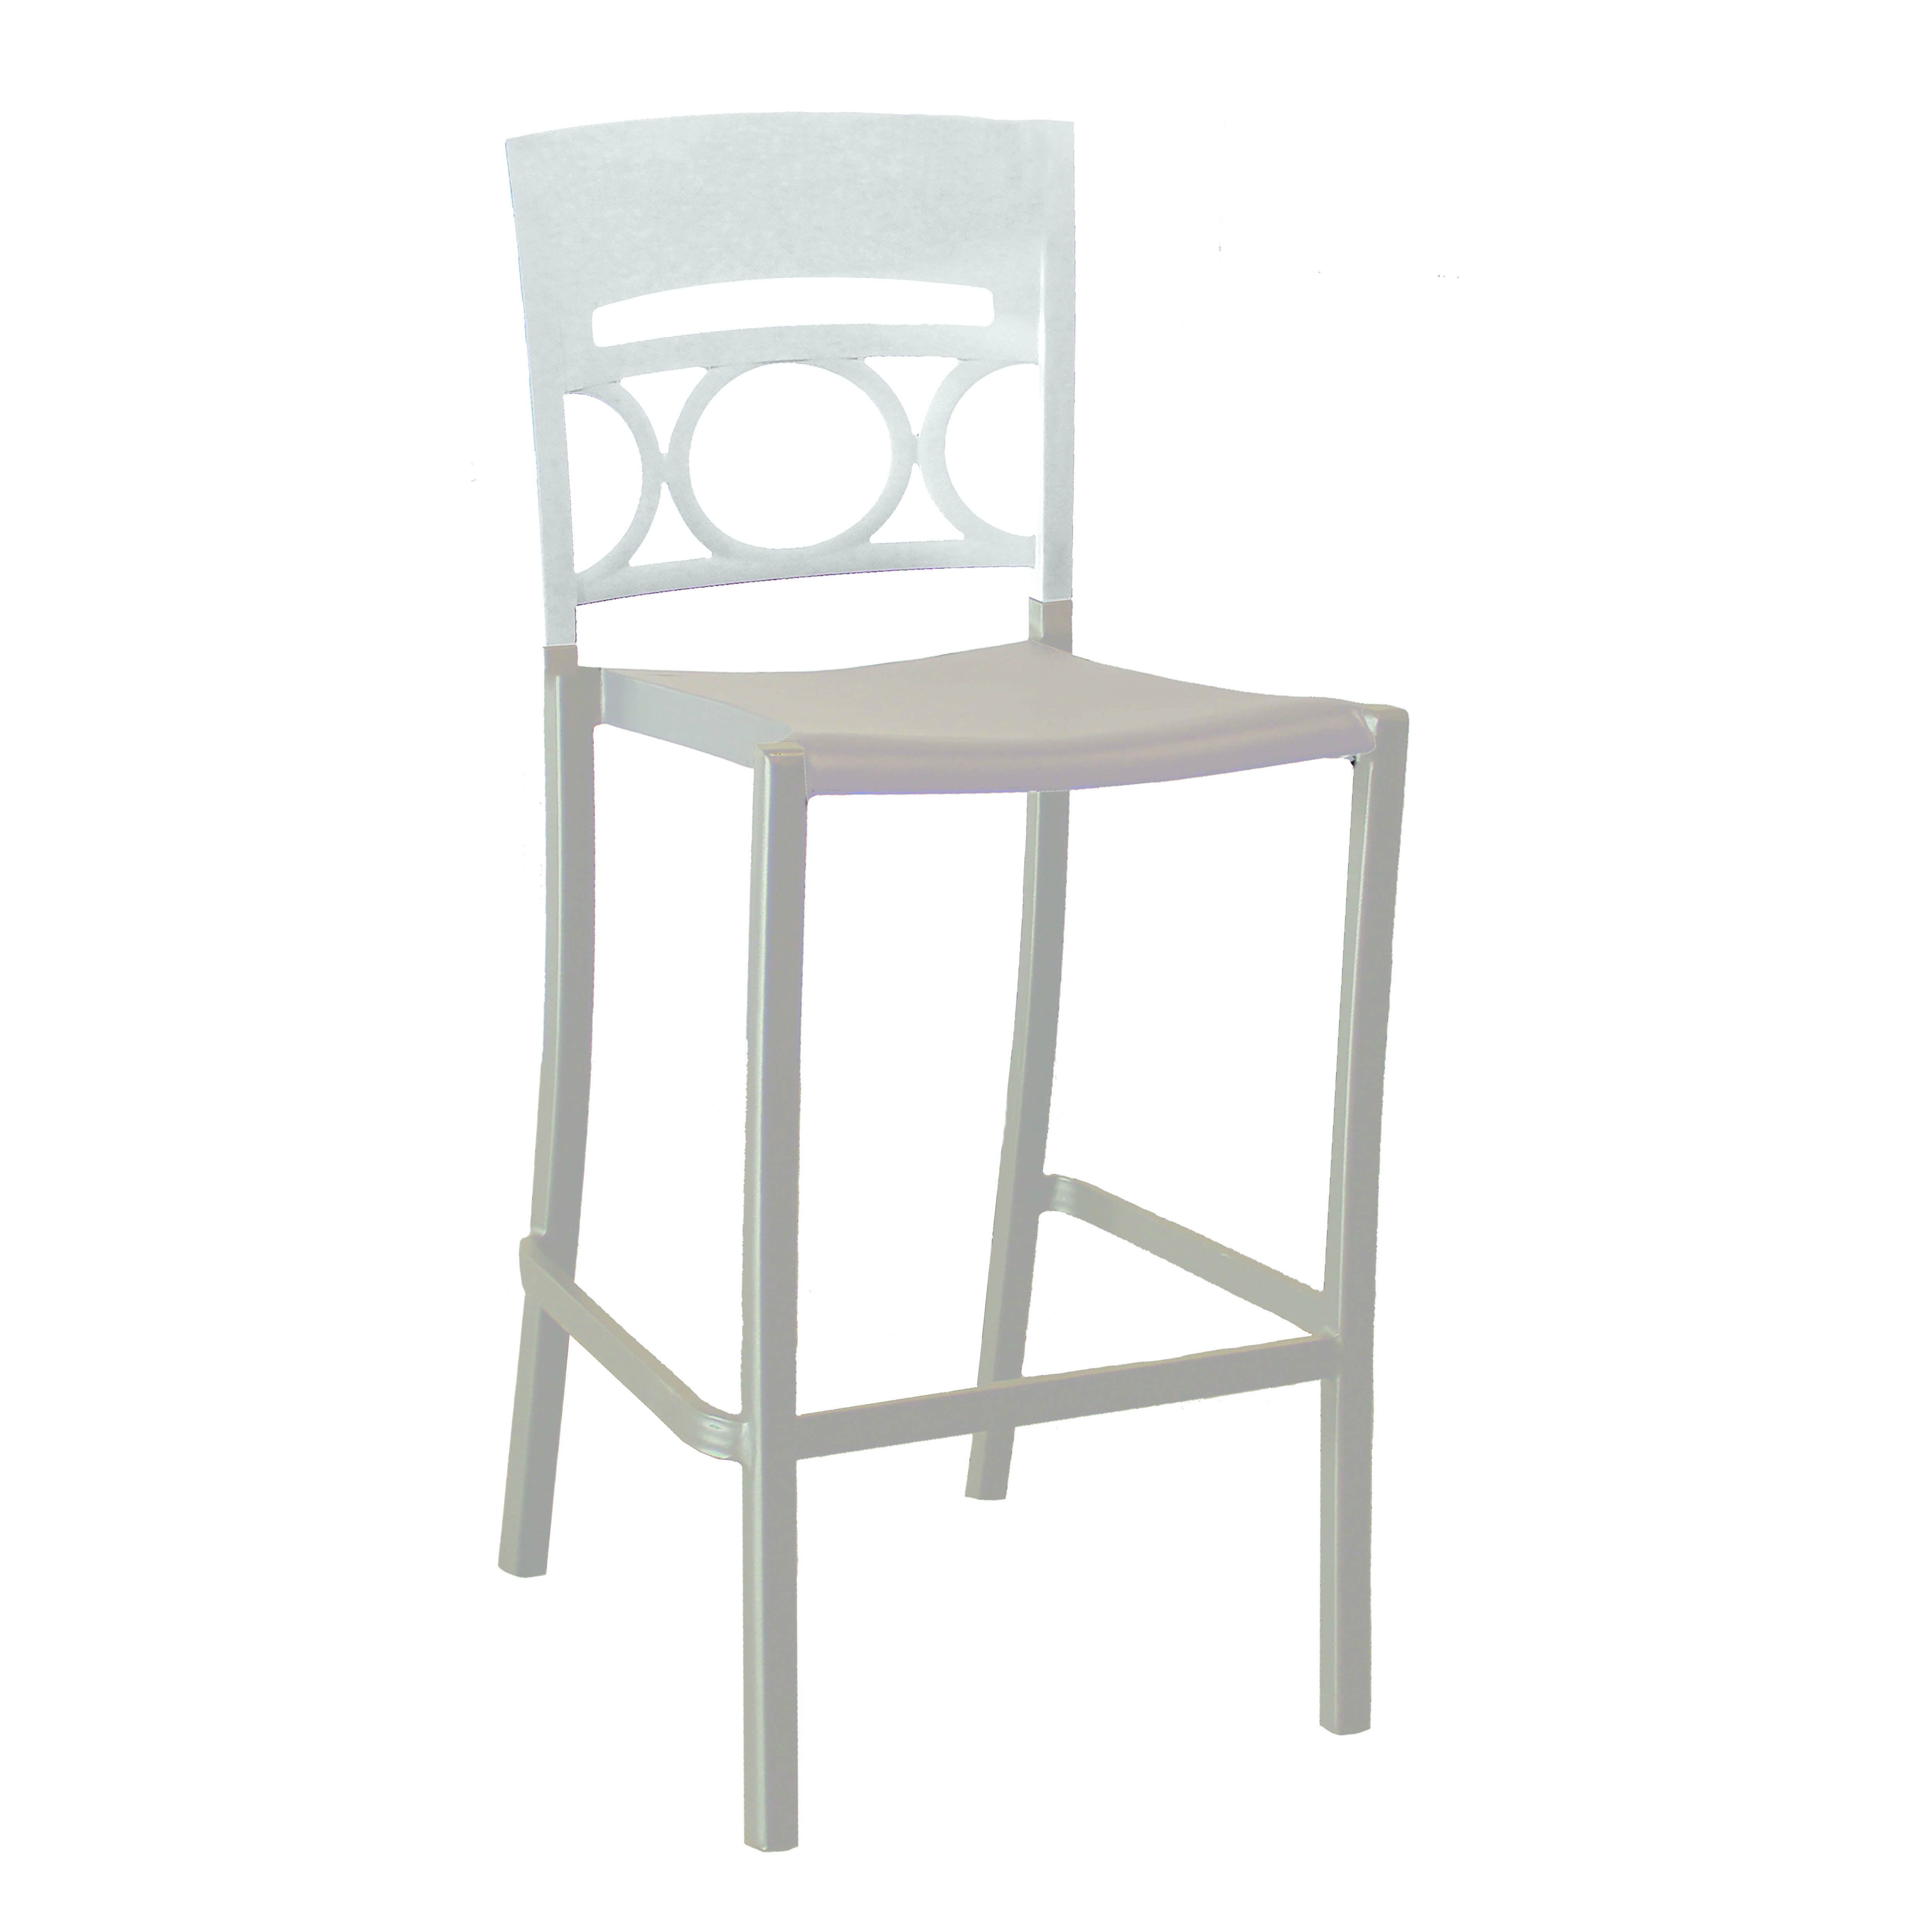 Grosfillex US654096 bar stool, stacking, outdoor